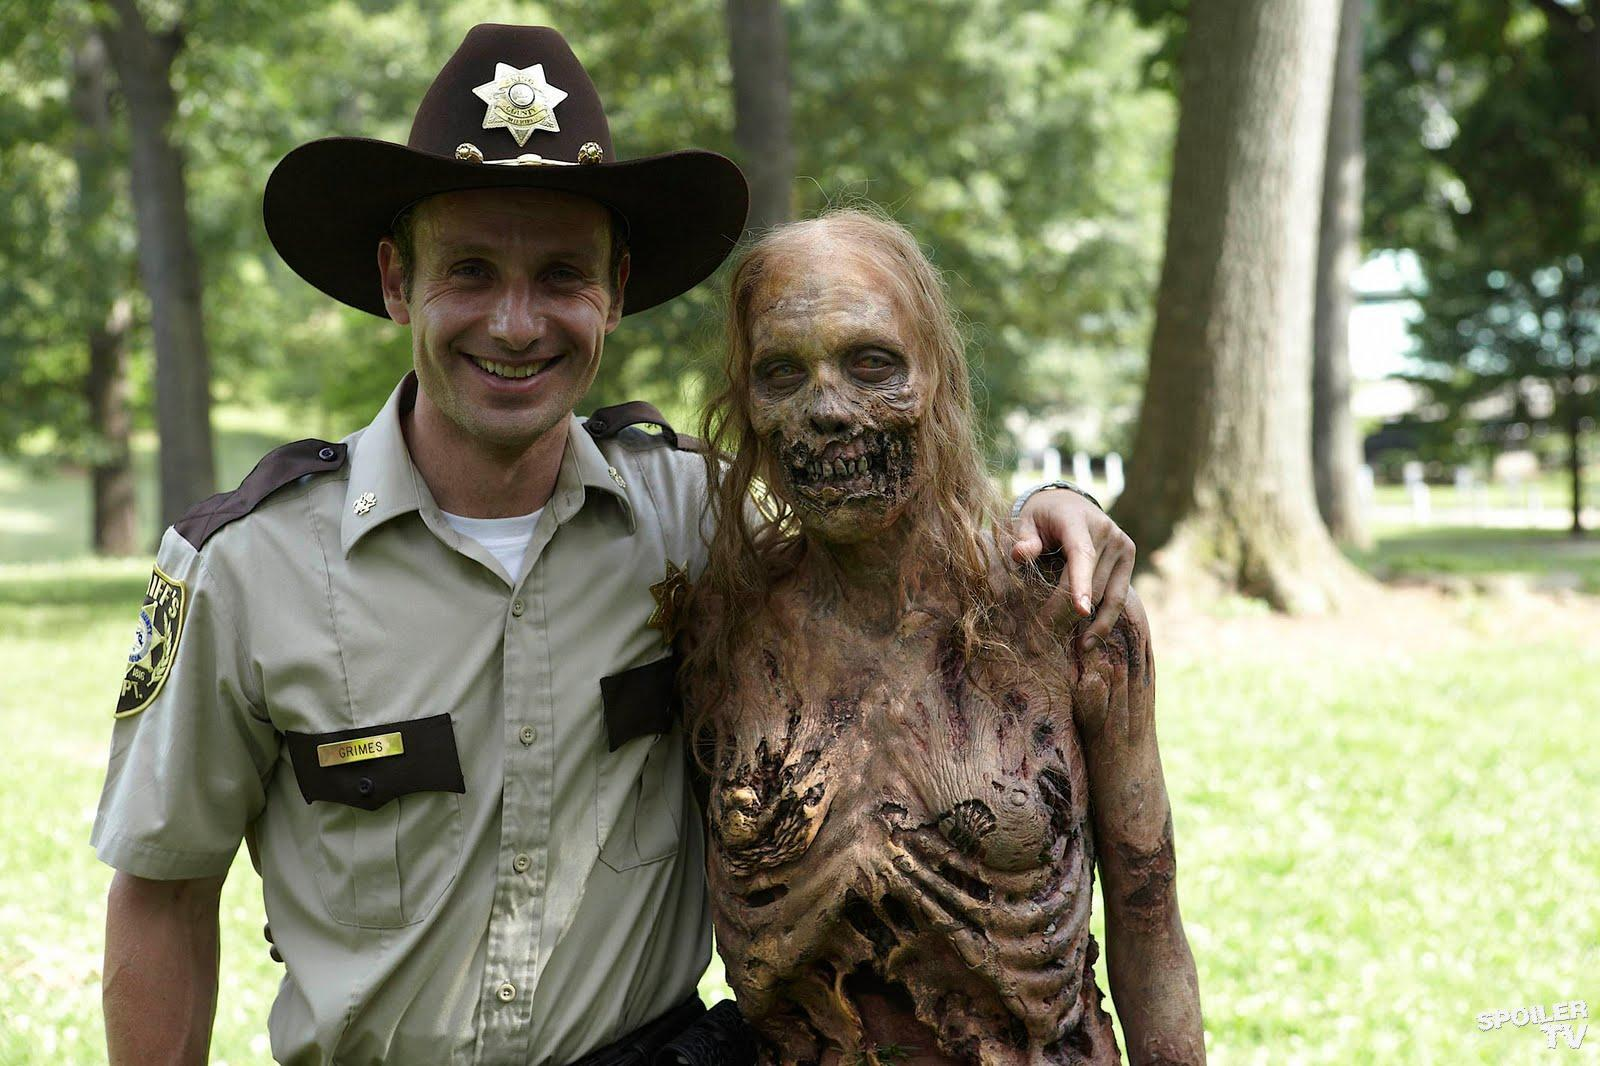 Rick and the bicycle girl zombie